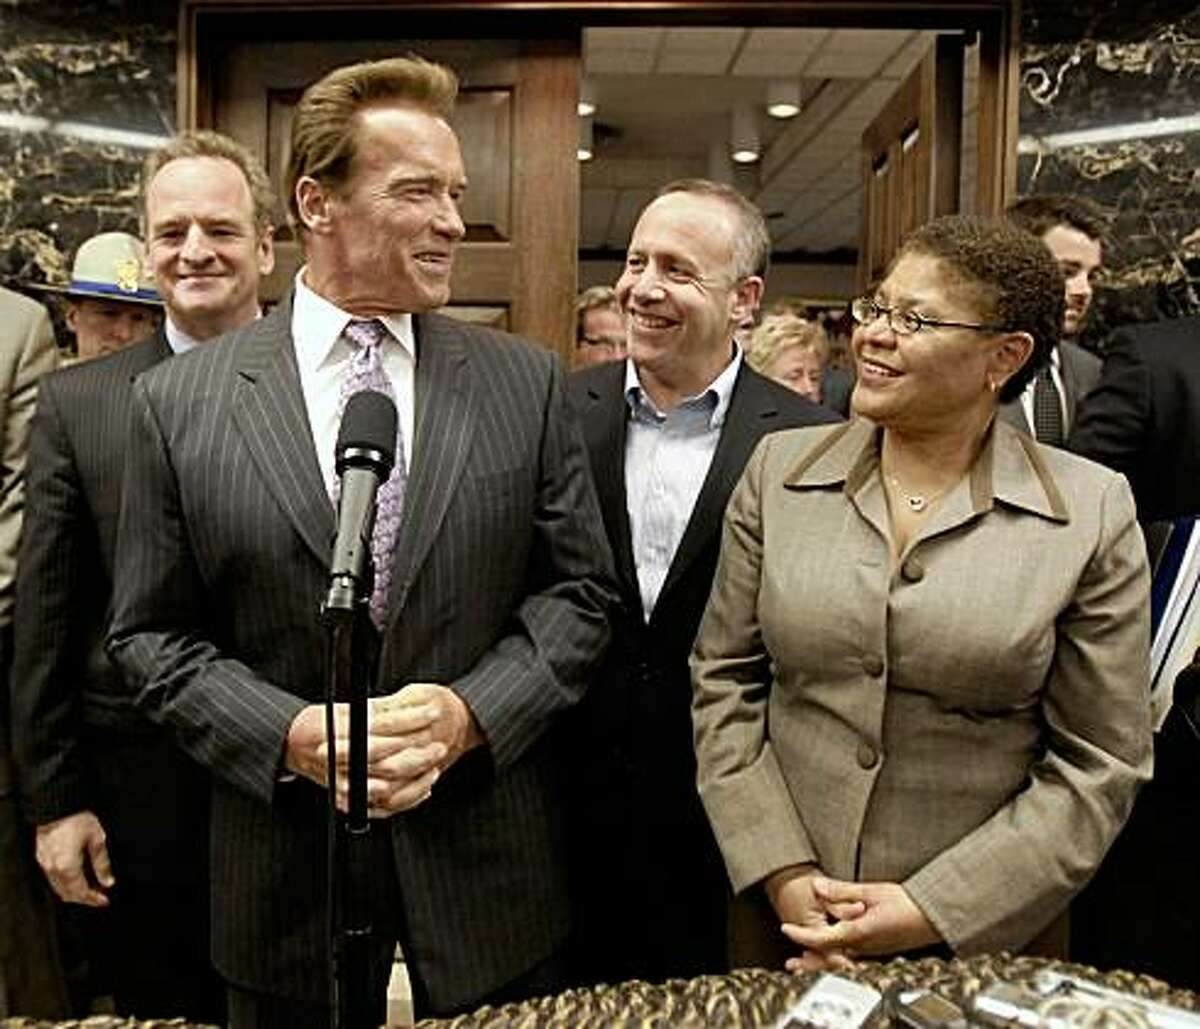 Gov. Arnold Schwarzenegger, front left, smiles at Senate President Pro Tem Darrell Steinberg, D-Sacramento, second from right and Assembly Speaker Karen Bass, D-Los Angeles, after emerging from his office to announce an agreement has been reached to solve California's budget problem, at the Capitol in Sacramento, Calif., Monday, July 20, 2009. Schwarzenegger met with Steinberg, Bass and Republican Leaders. Assembly Minority Leader Sam Blakeslee, R-San Luis Obispo, left, and Senate Minority Leader Dennis Hollingsworth, of Temecula, unseen, most of the day to hammer a an agreement to close the state's $26.3 billion budget deficit.(AP Photo/Rich Pedroncelli)